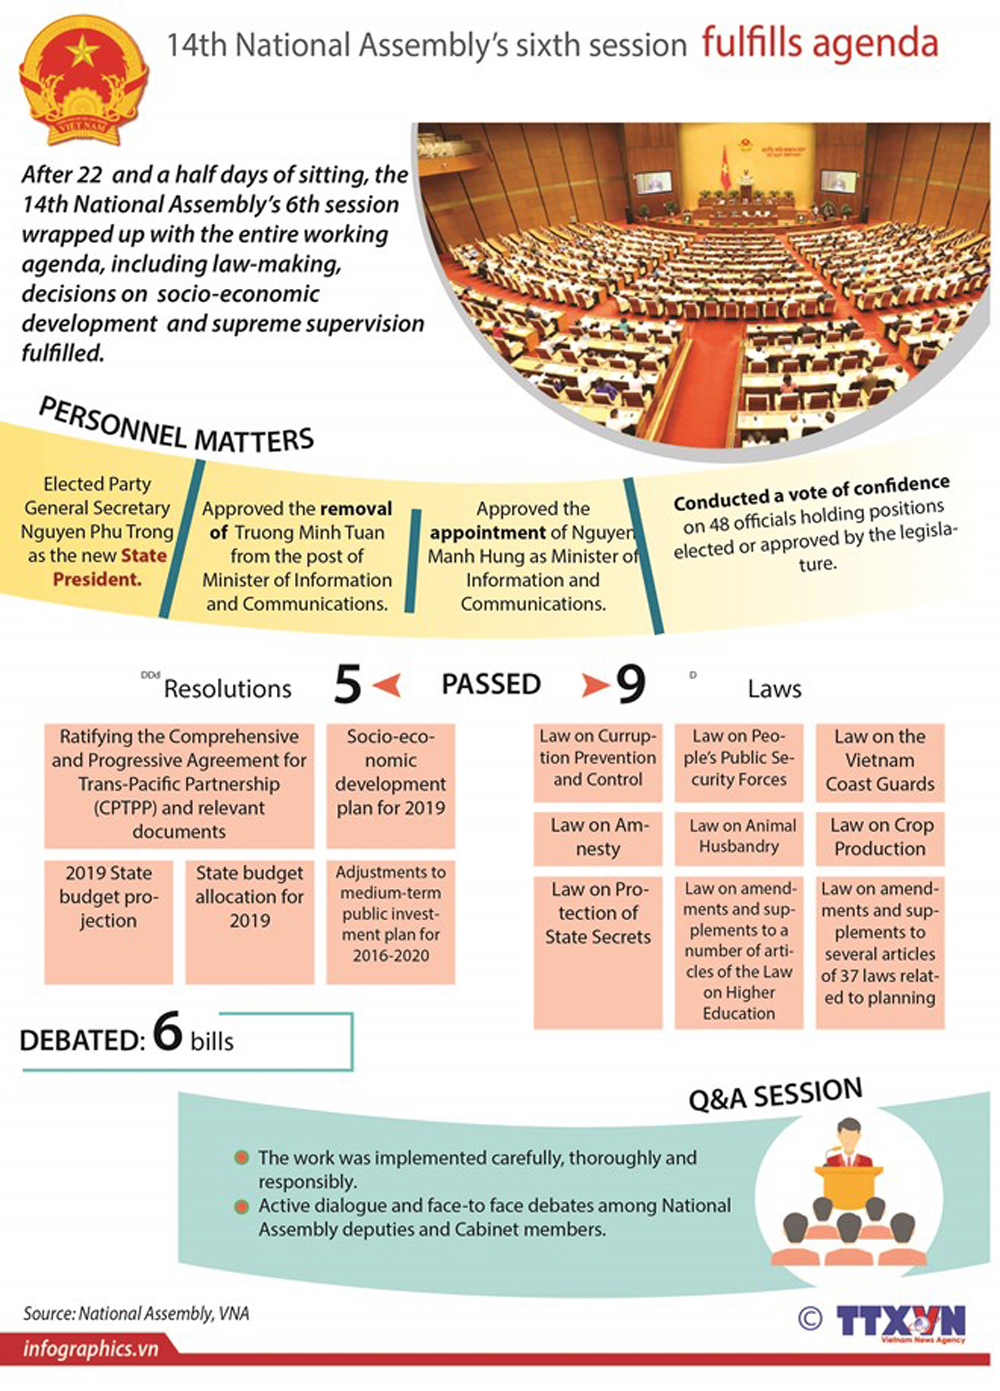 14th National Assembly, sixth session, agenda completion, law making decision, socio - economic development